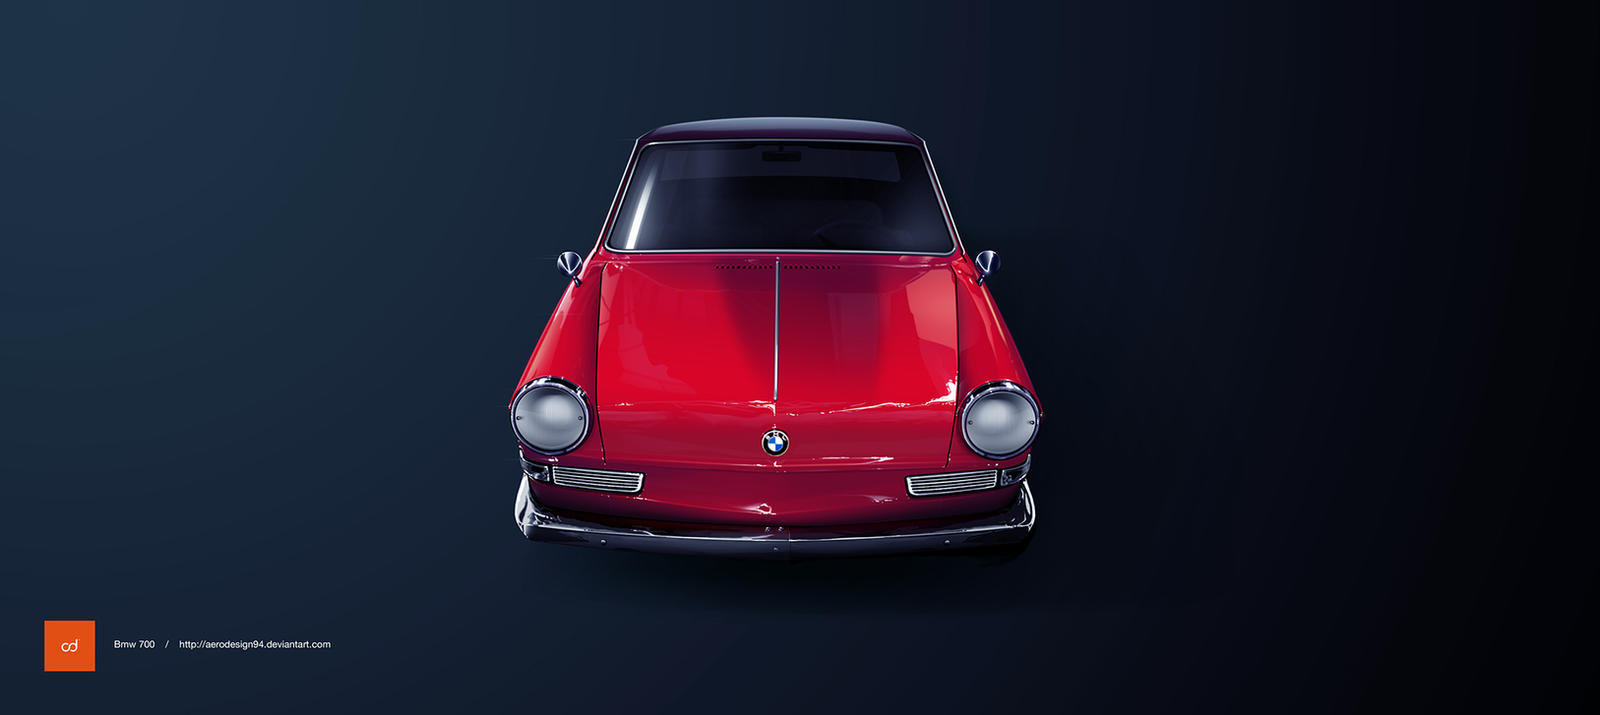 BMW 700 by AeroDesign94